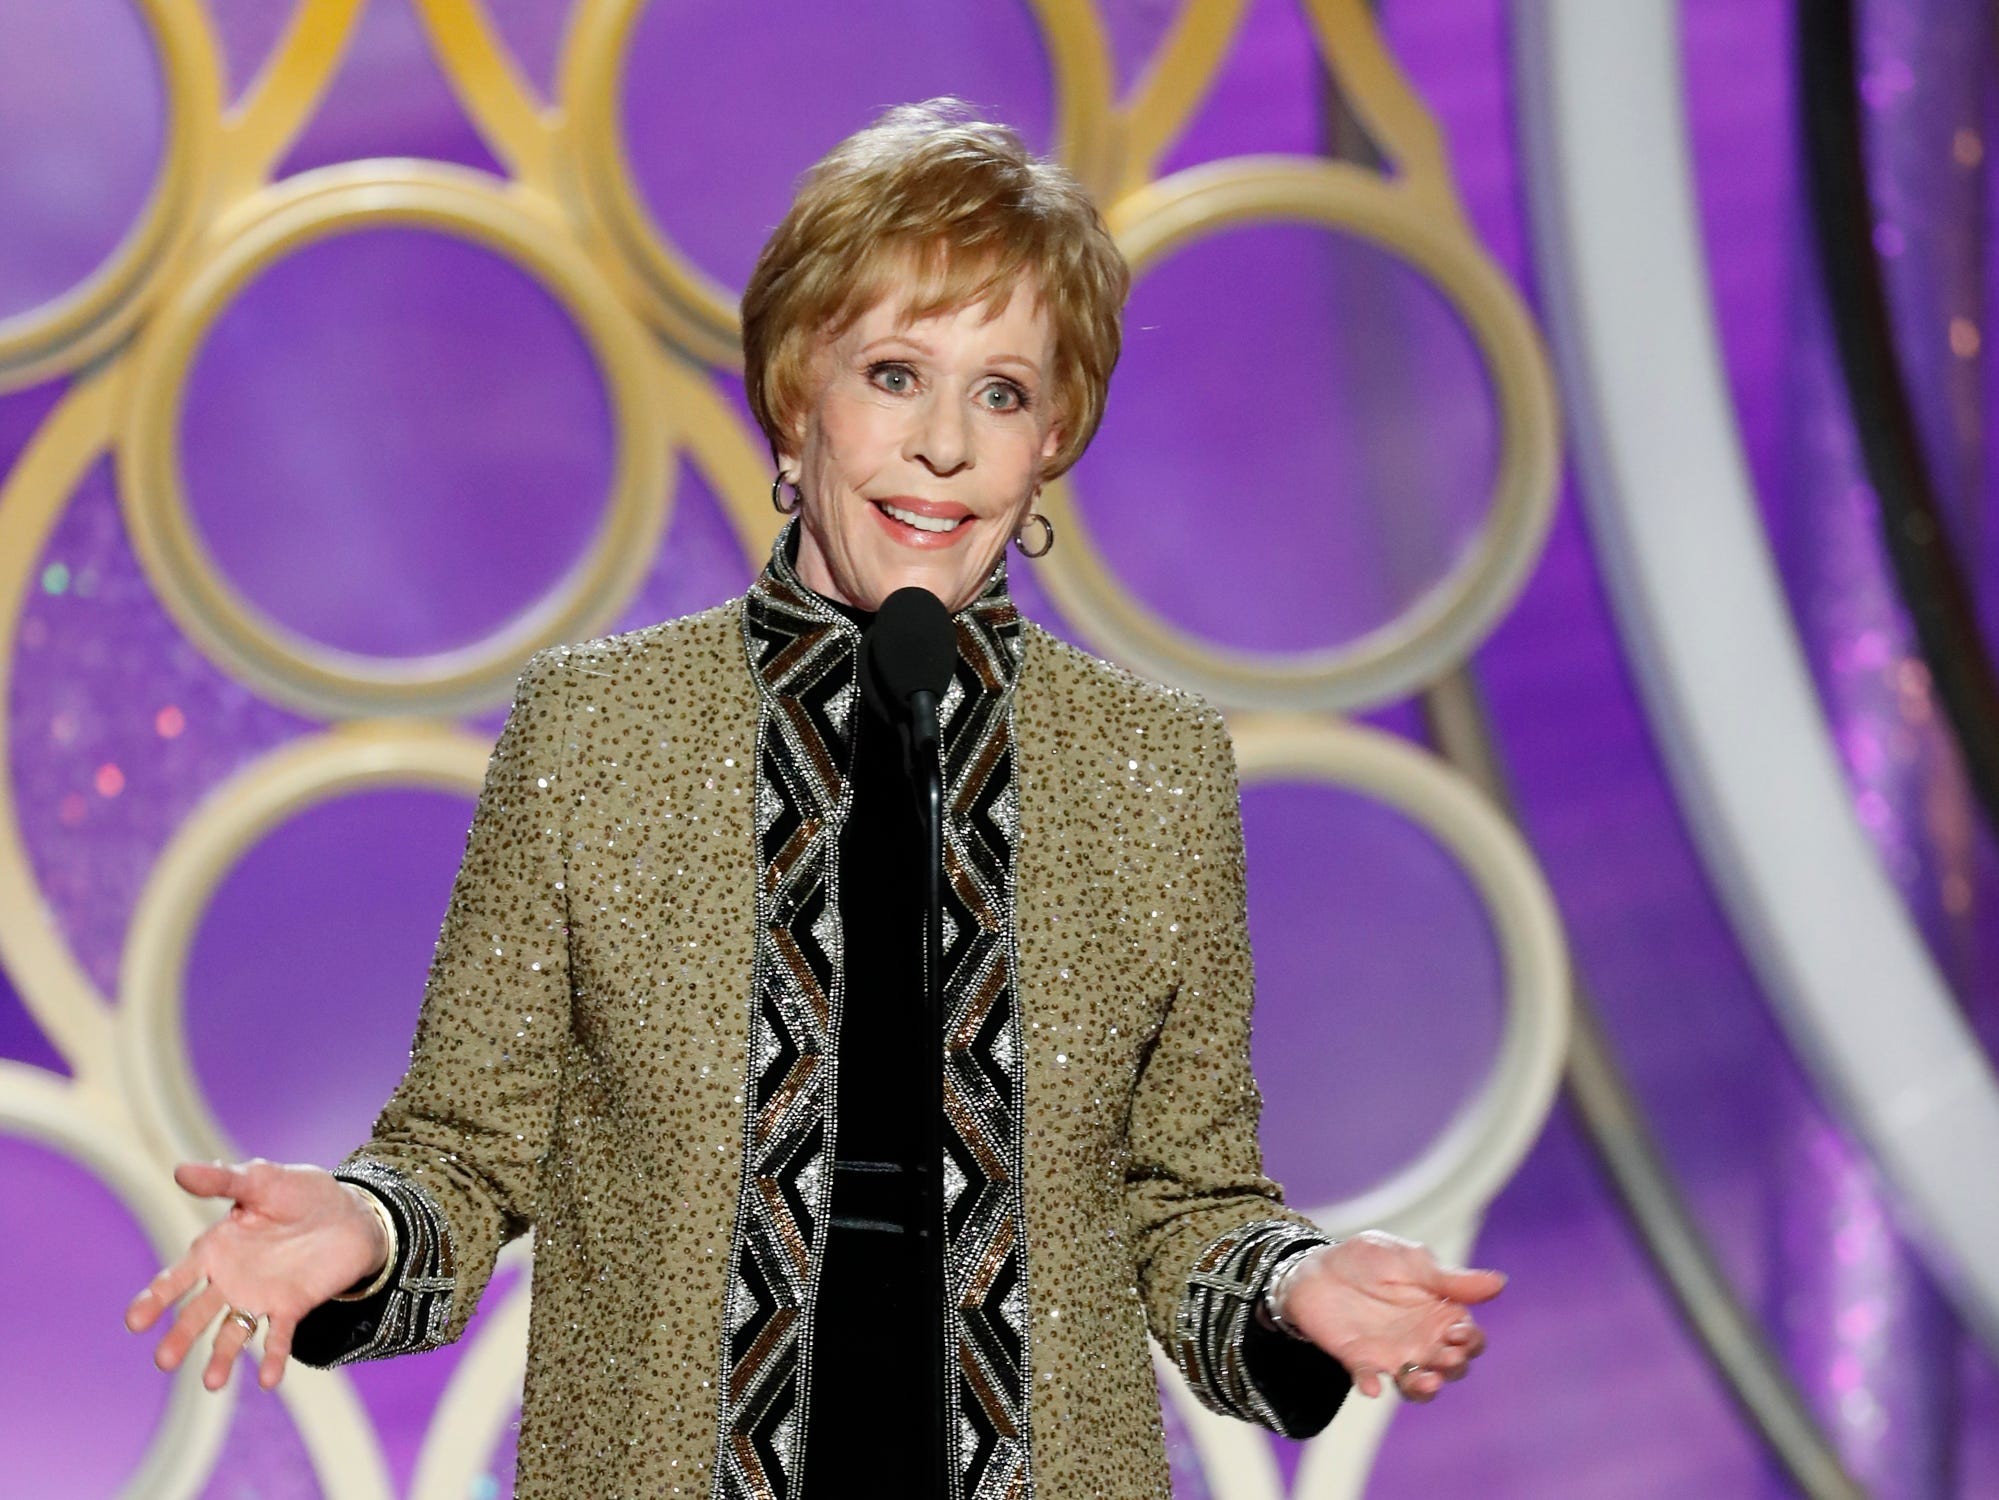 This image released by NBC shows Carol Burnett accepting the inaugural Carol Burnett TV Achievement Award during the 76th Annual Golden Globe Awards at the Beverly Hilton Hotel.